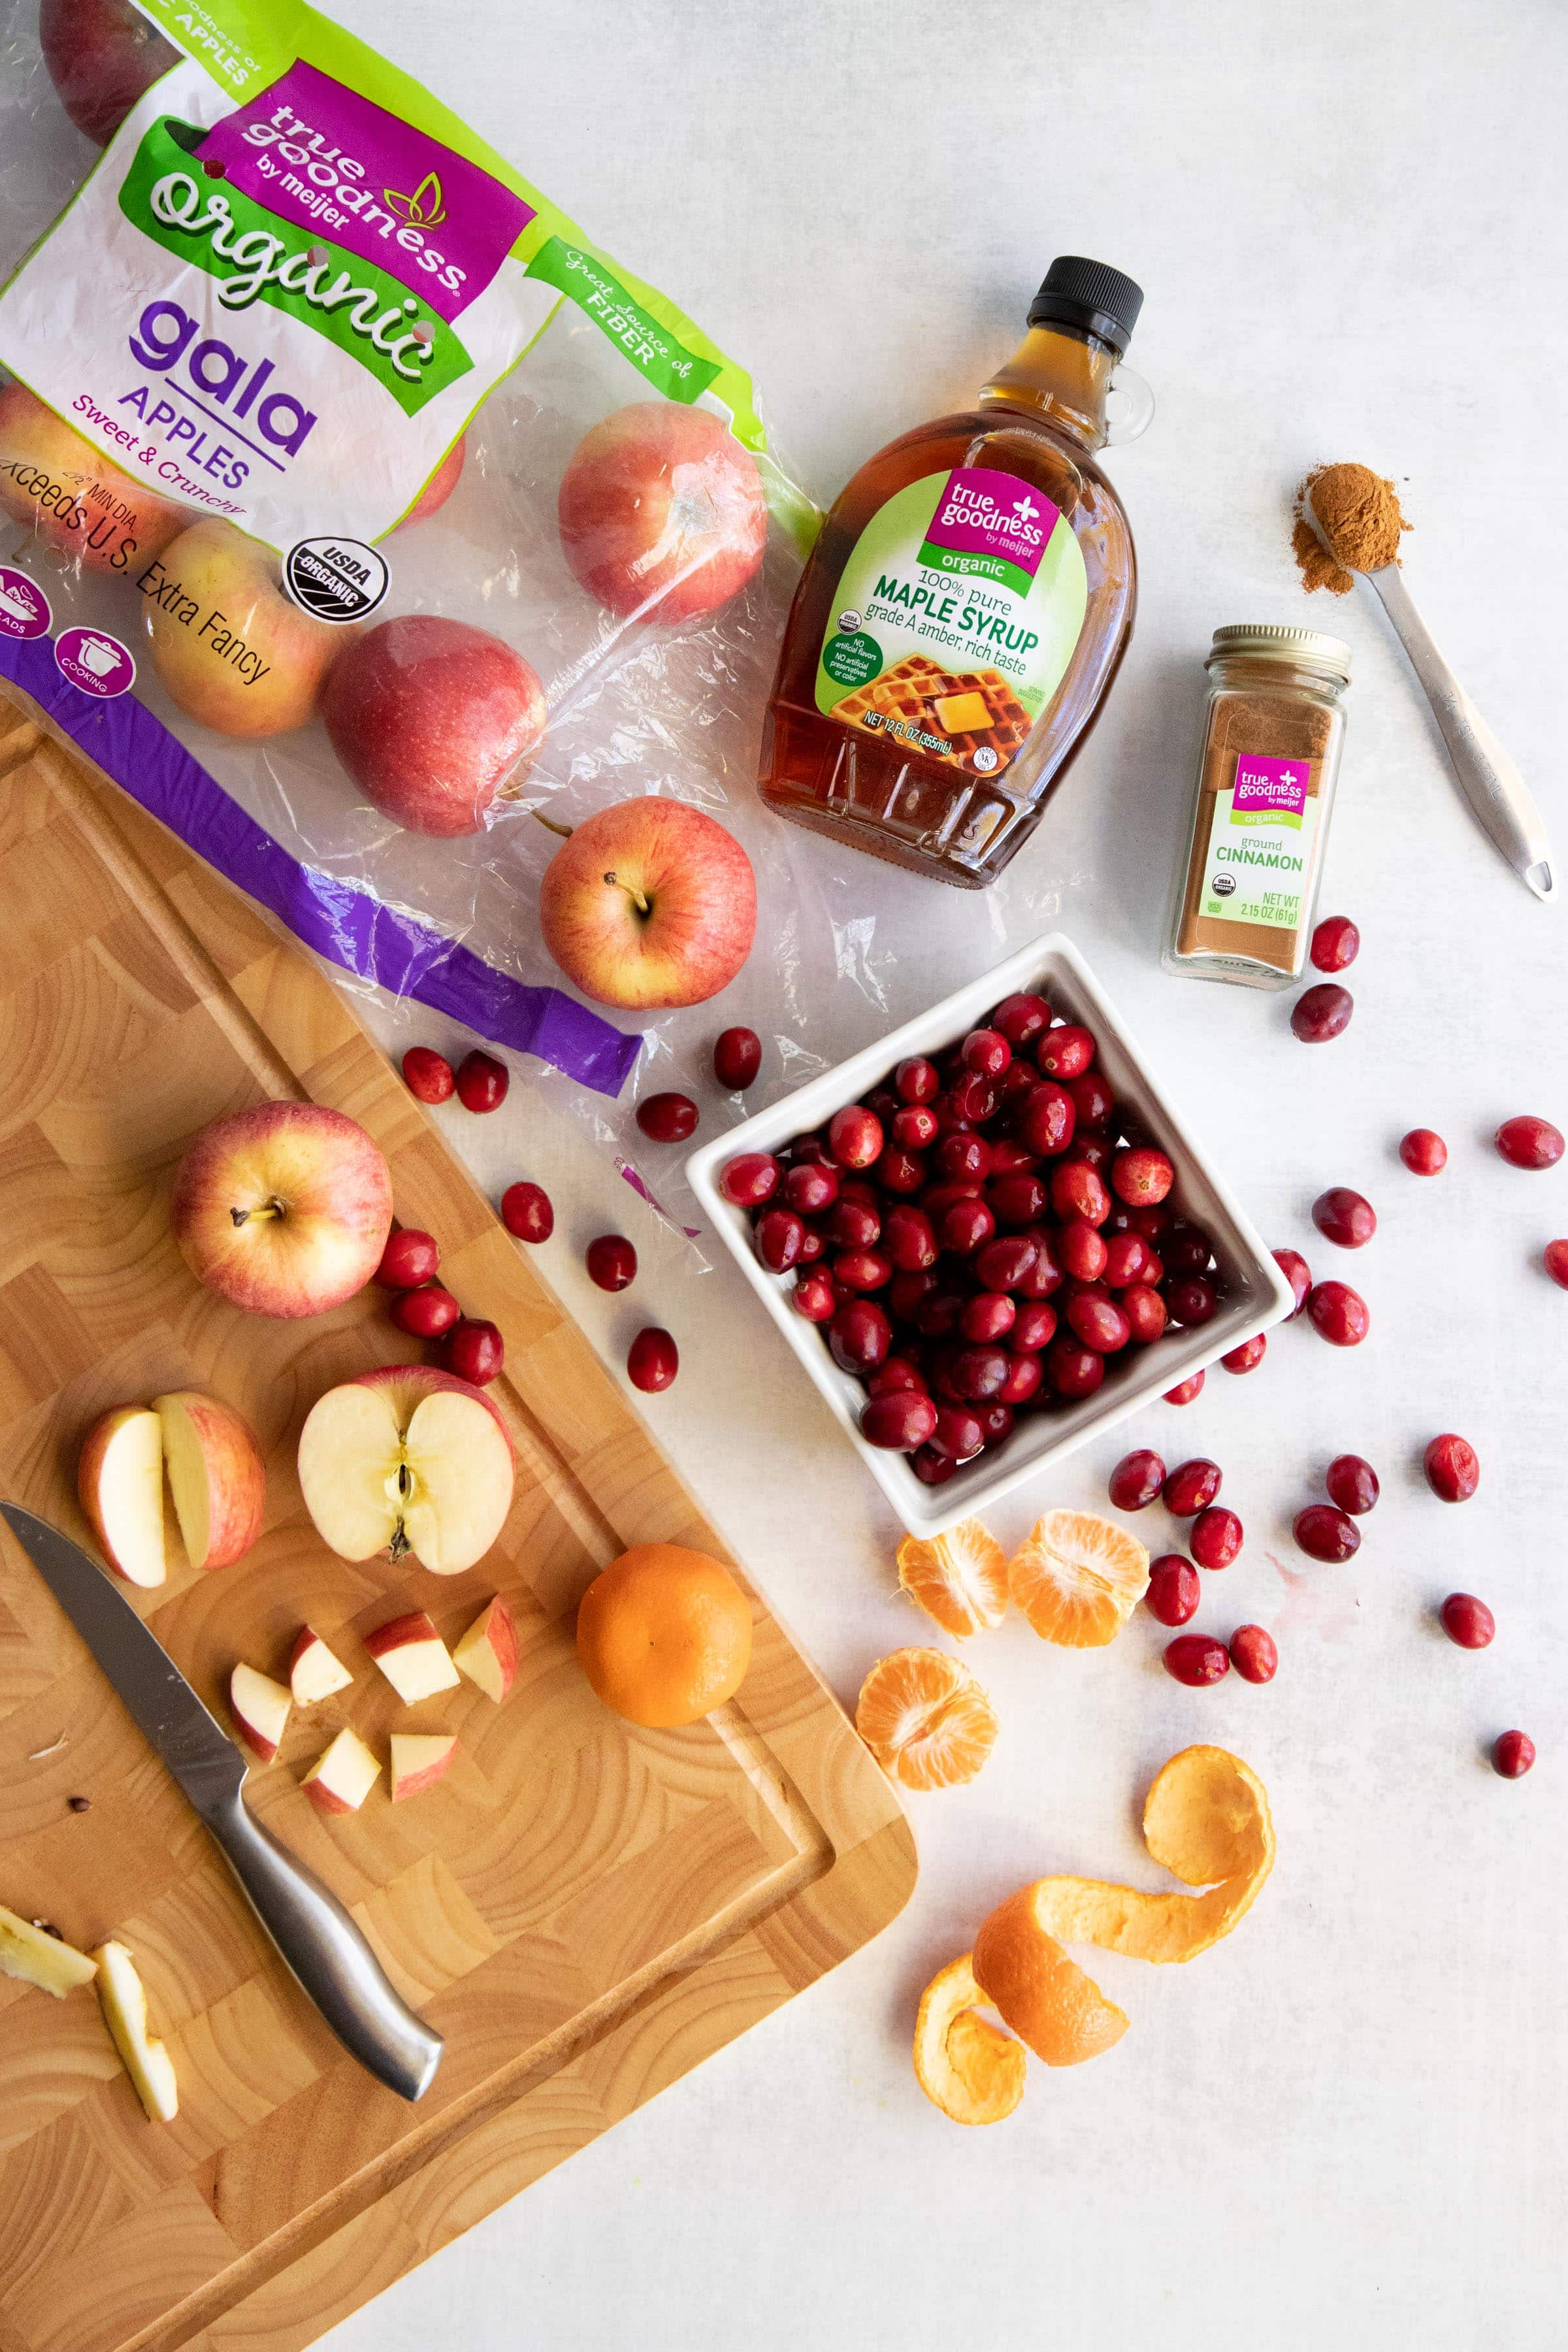 Ingredients for Chunky Cranberry Applesauce with a cutting board - cranberries, bag of Gala apples, maple syrup, spics, and citrus